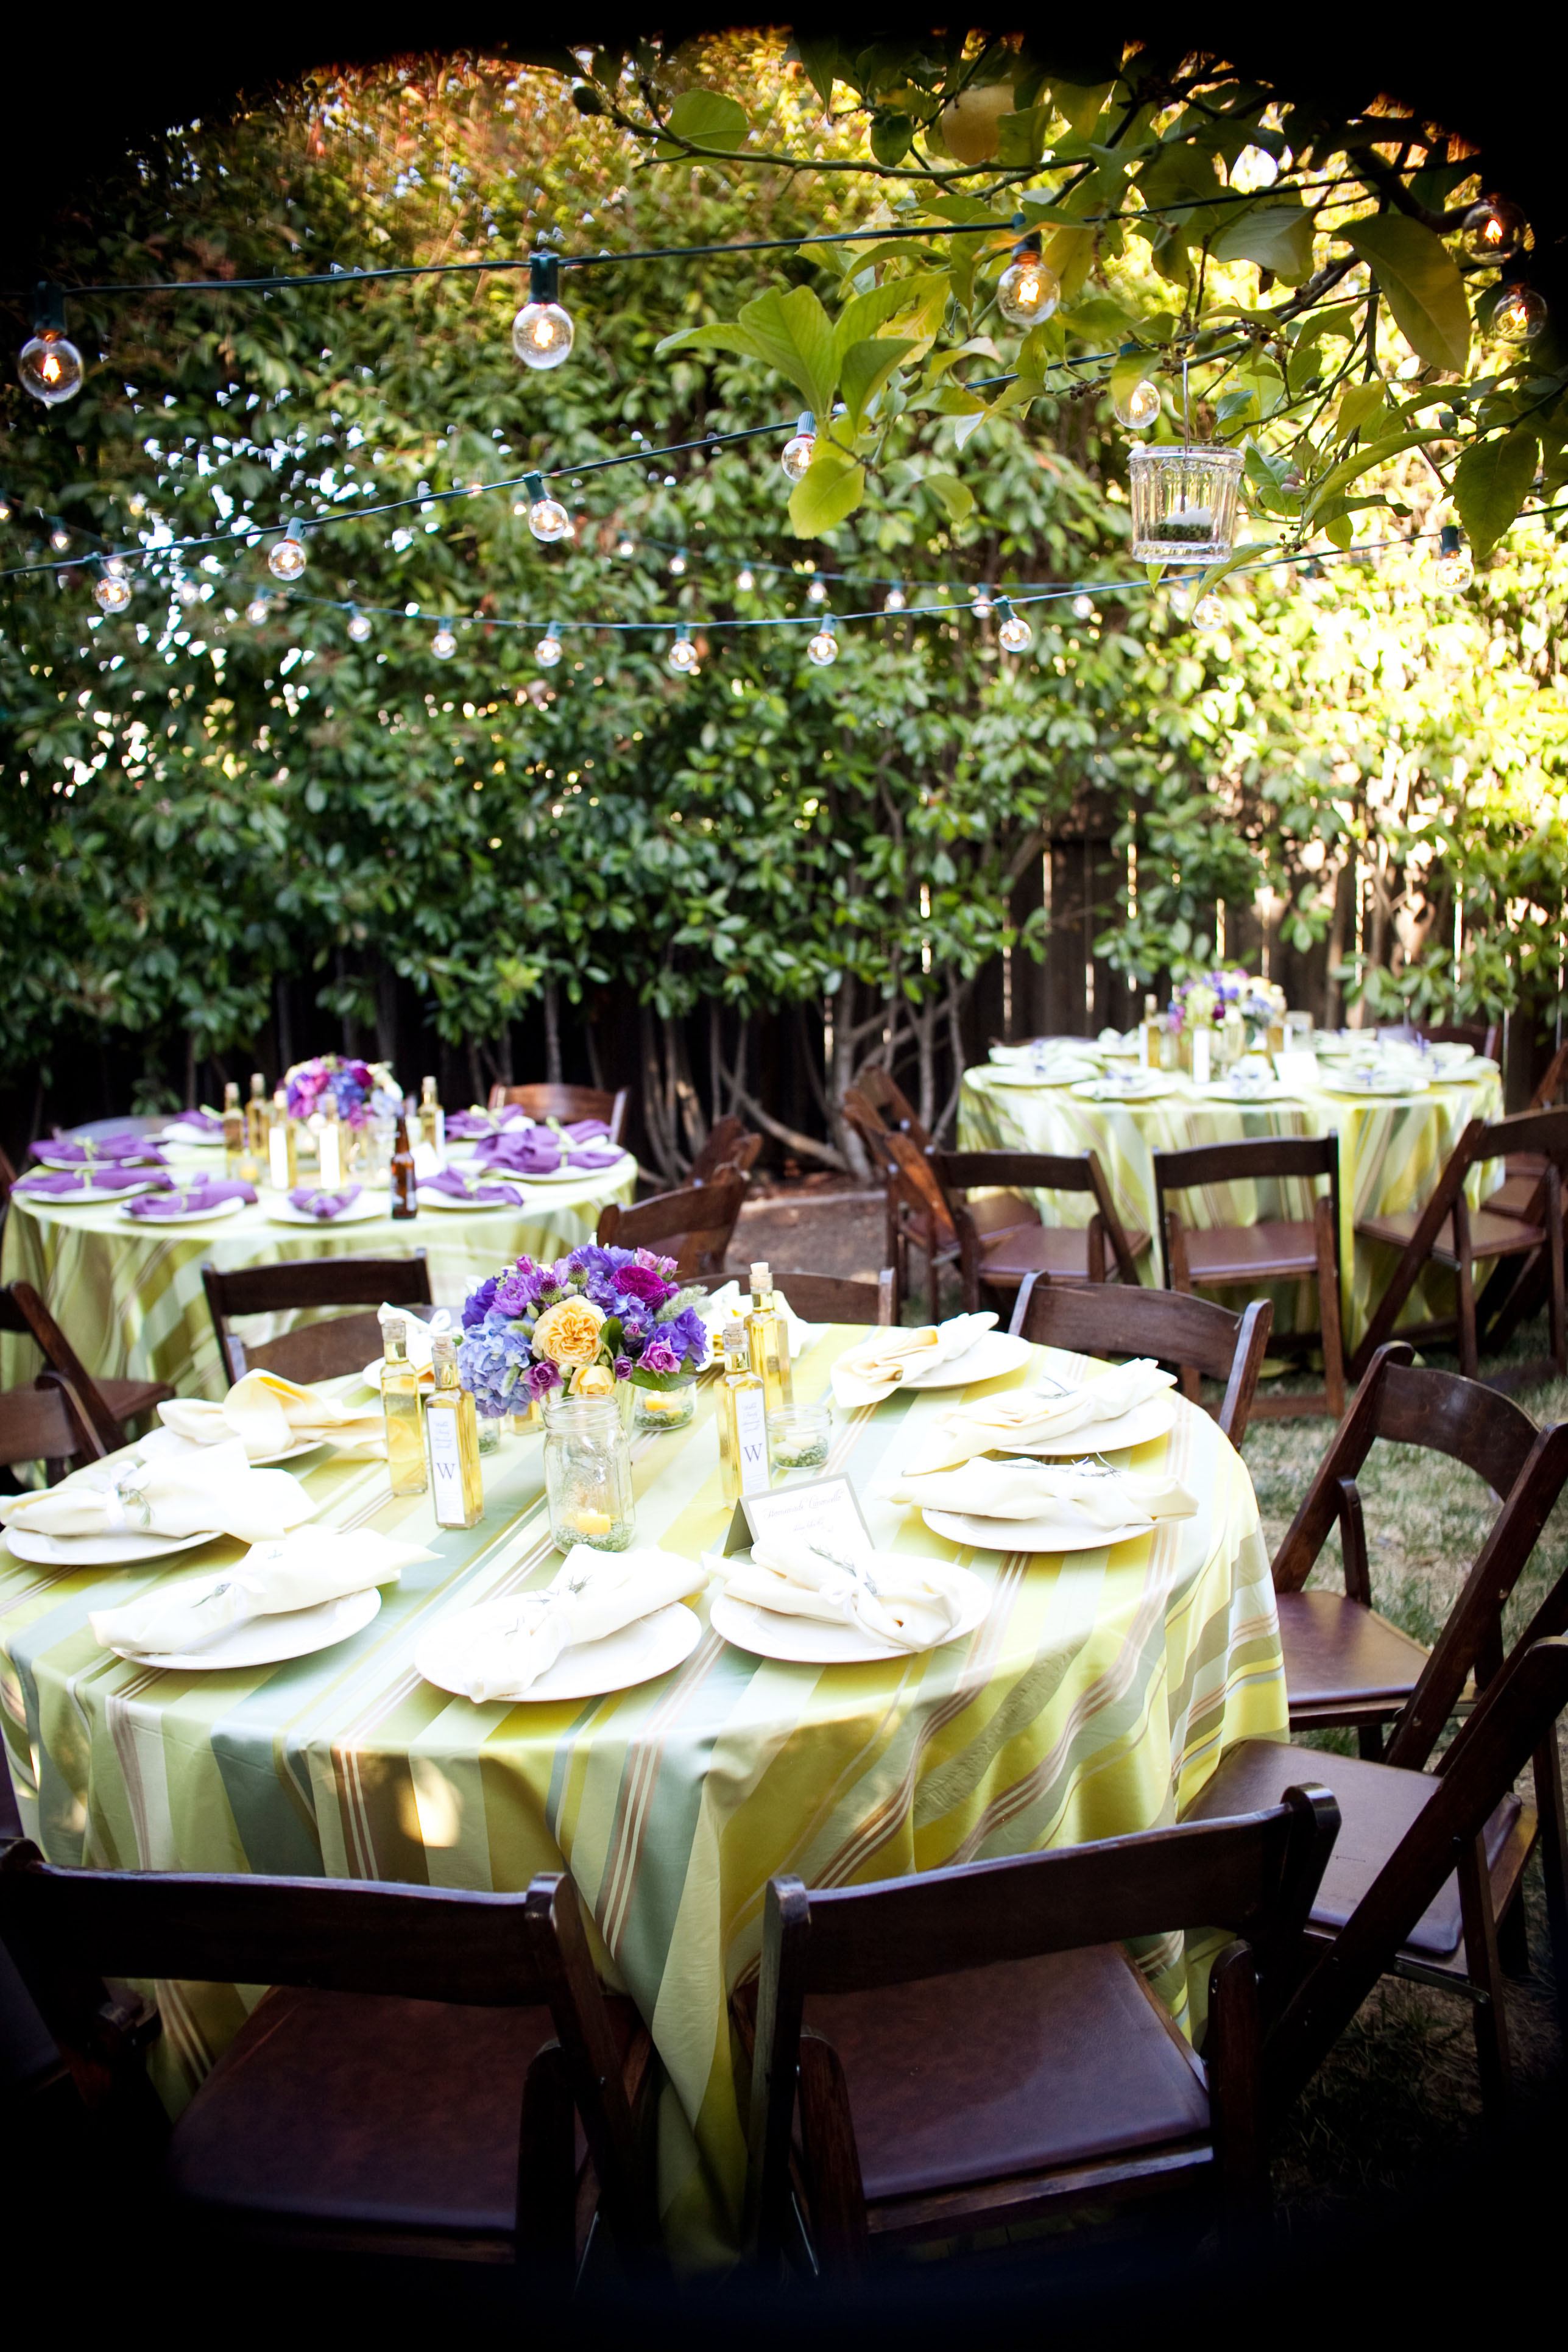 Backyard Bbq Wedding Reception Outdoor Furniture Design Decorations inside 10 Awesome Designs of How to Upgrade Backyard Bbq Reception Ideas